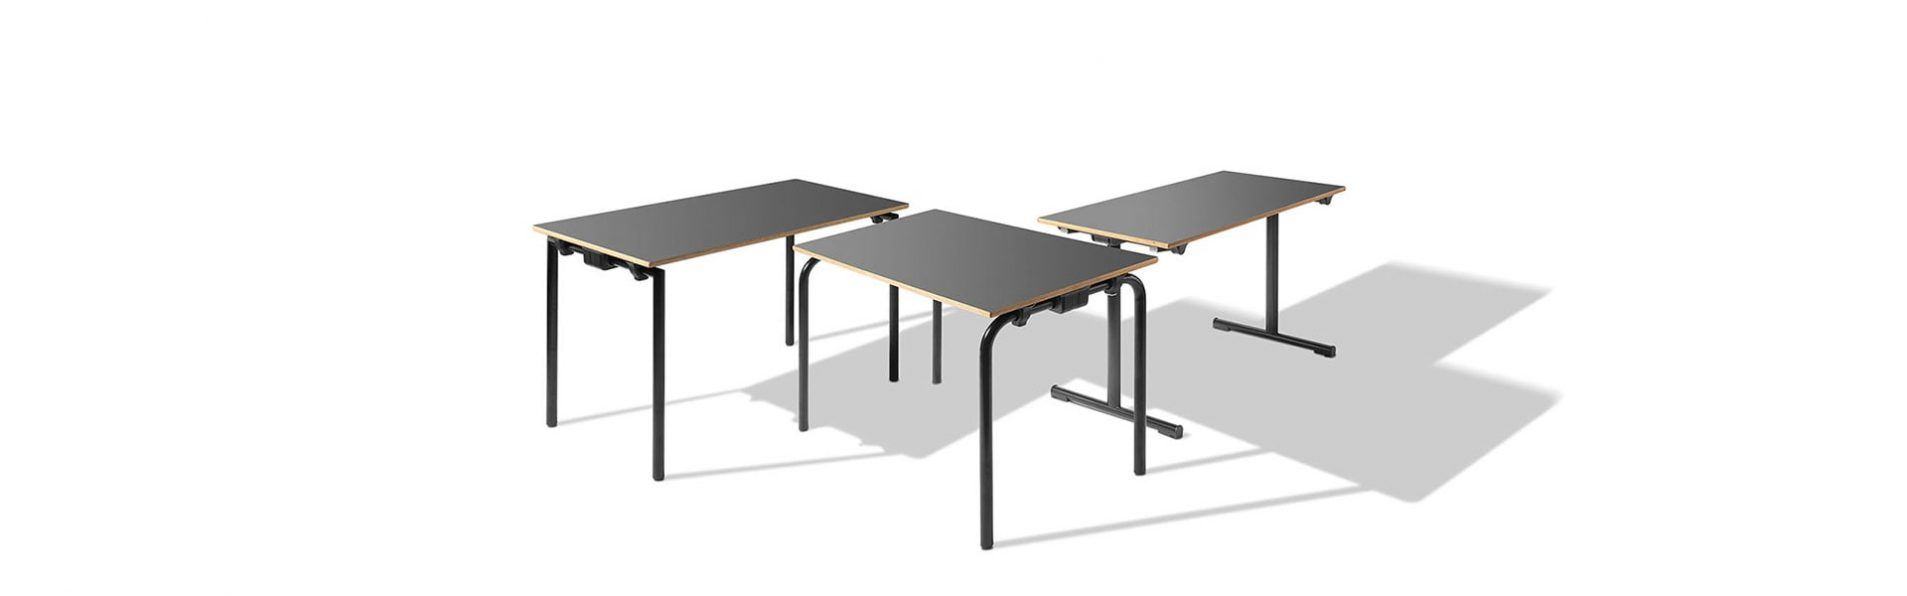 malschersitzmoebel-msm-table-tisch-224+221-gruppiert-schatten